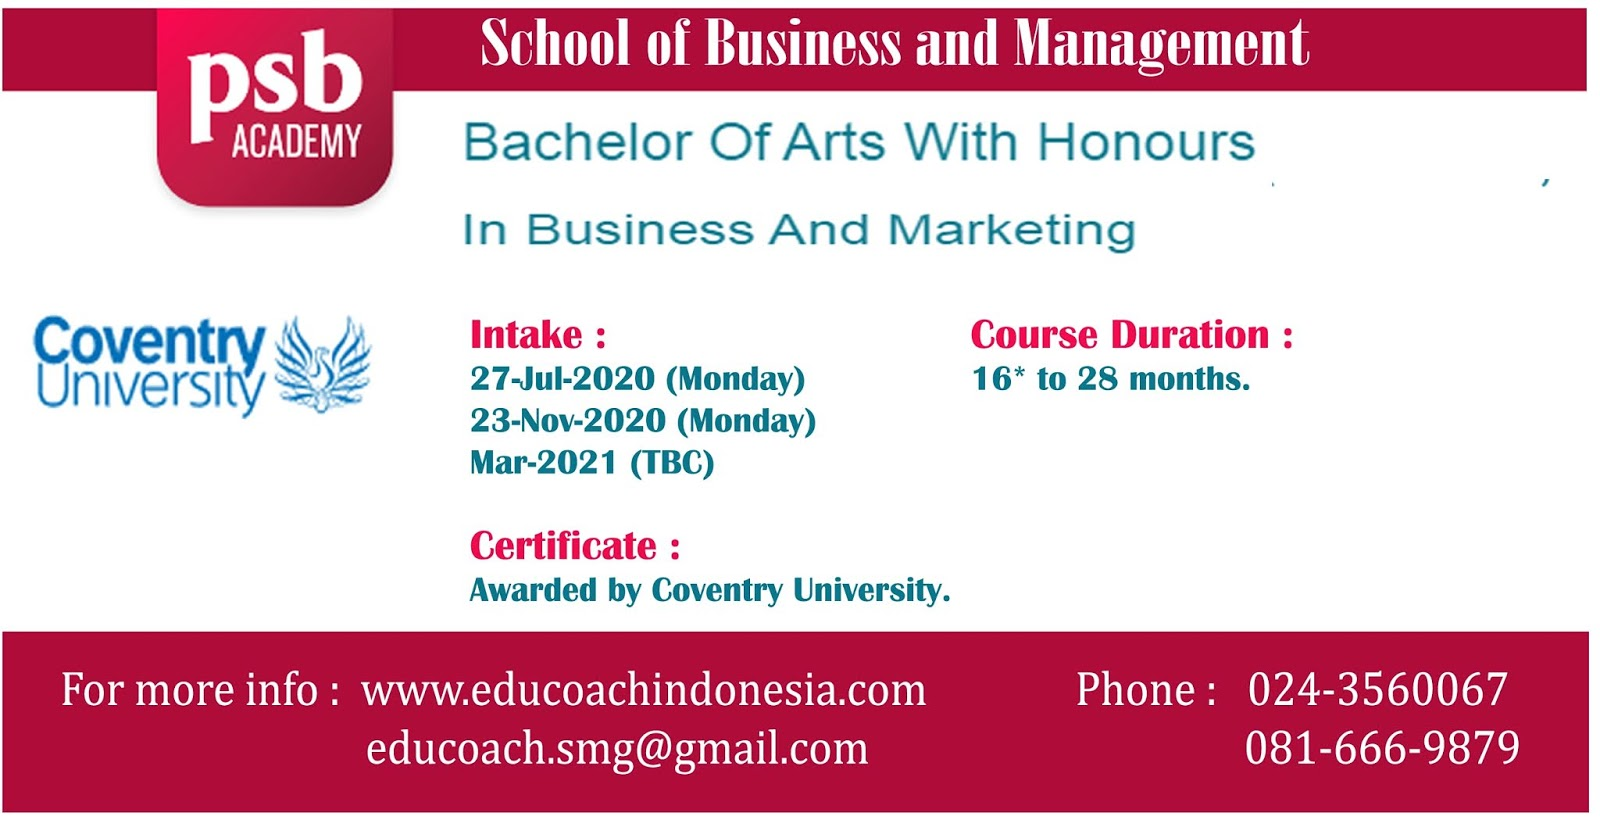 Bachelor Of Arts With Honours In Business And Marketing | University of Coventry | PSB Academy Singapura